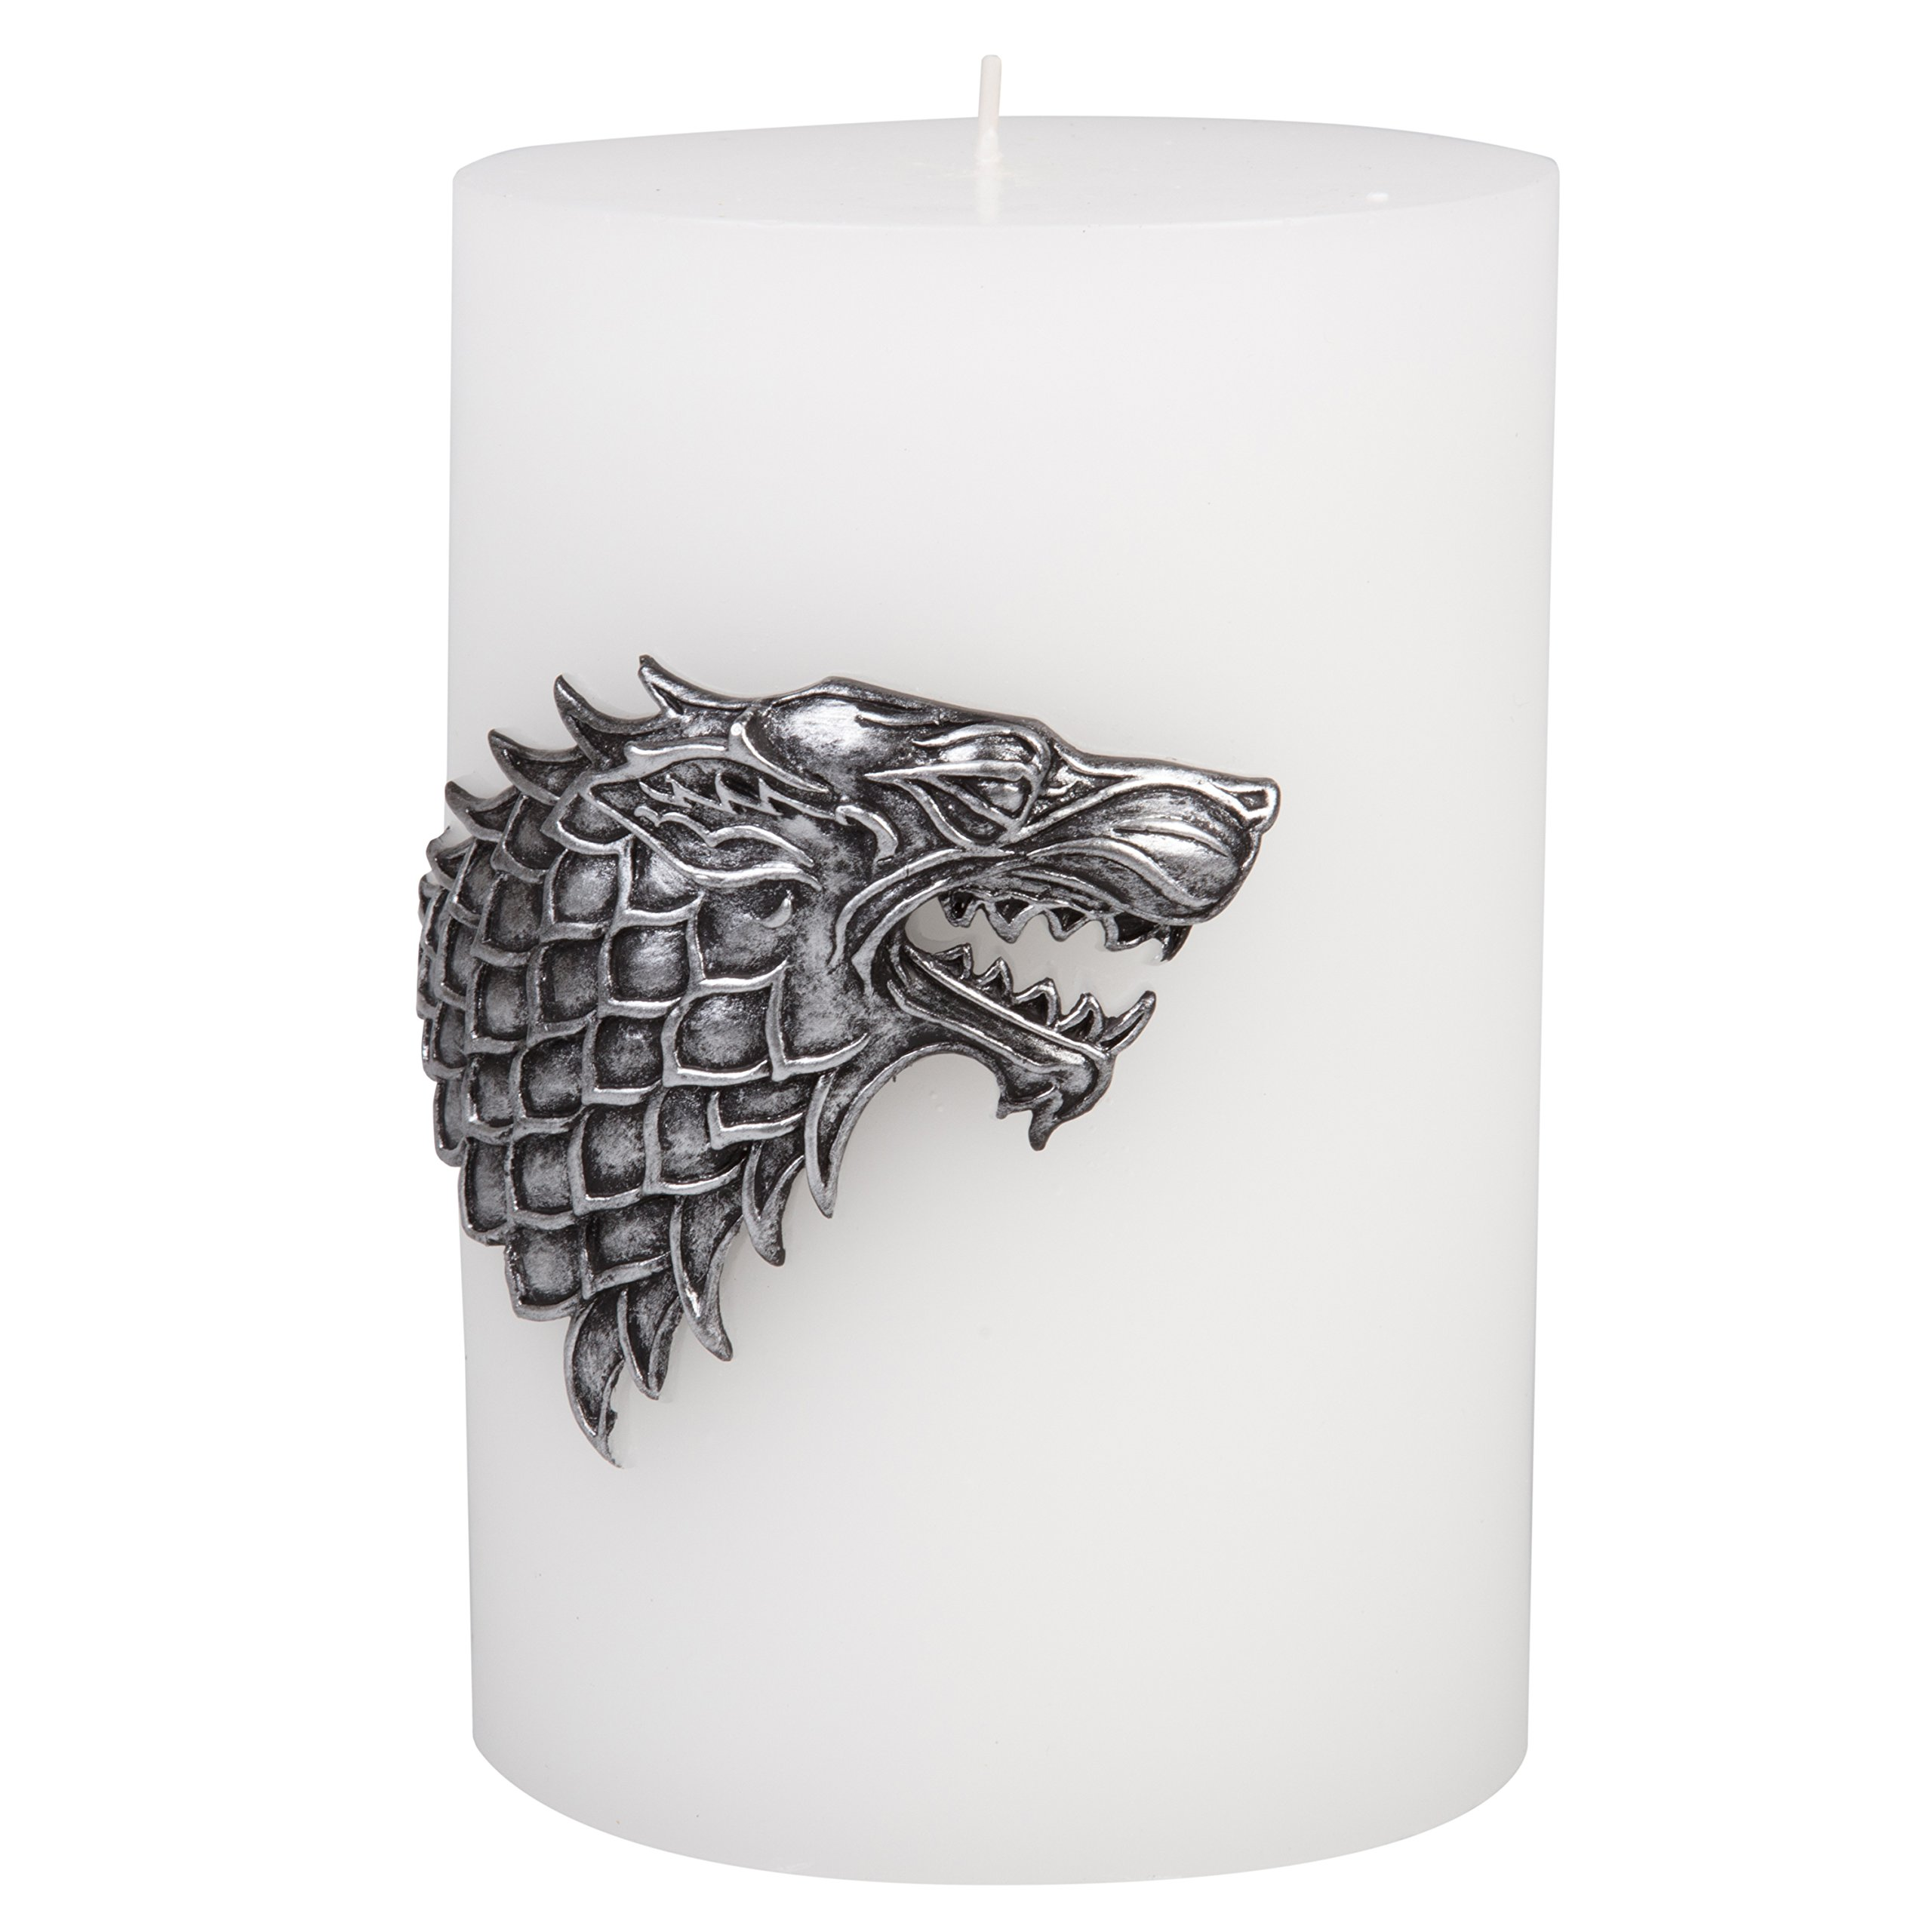 Game of Thrones Candle - Large House Stark Insignia Sculpted Pillar Candle - Perfect for GoT Fans - Unscented - 8''h by Game of Thrones (Image #4)